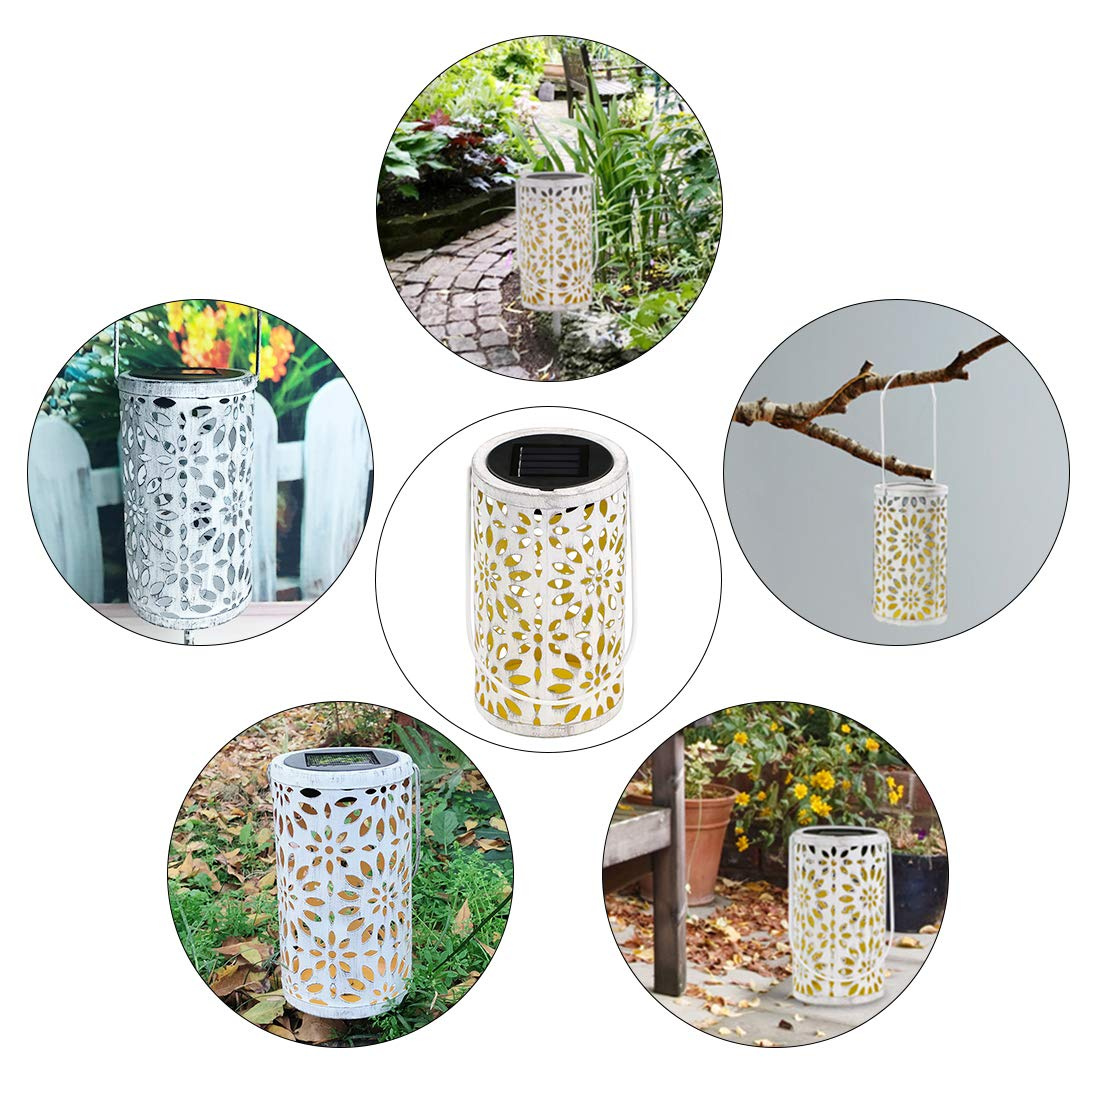 Solar Light Lanterns Outdoor LED Solar Garden Lanterns, Hanging Lamp Carved Flowers with Retro Cylindrical Chrysanthemum, Waterproof Warm White Night Light for Garden Path Ornaments